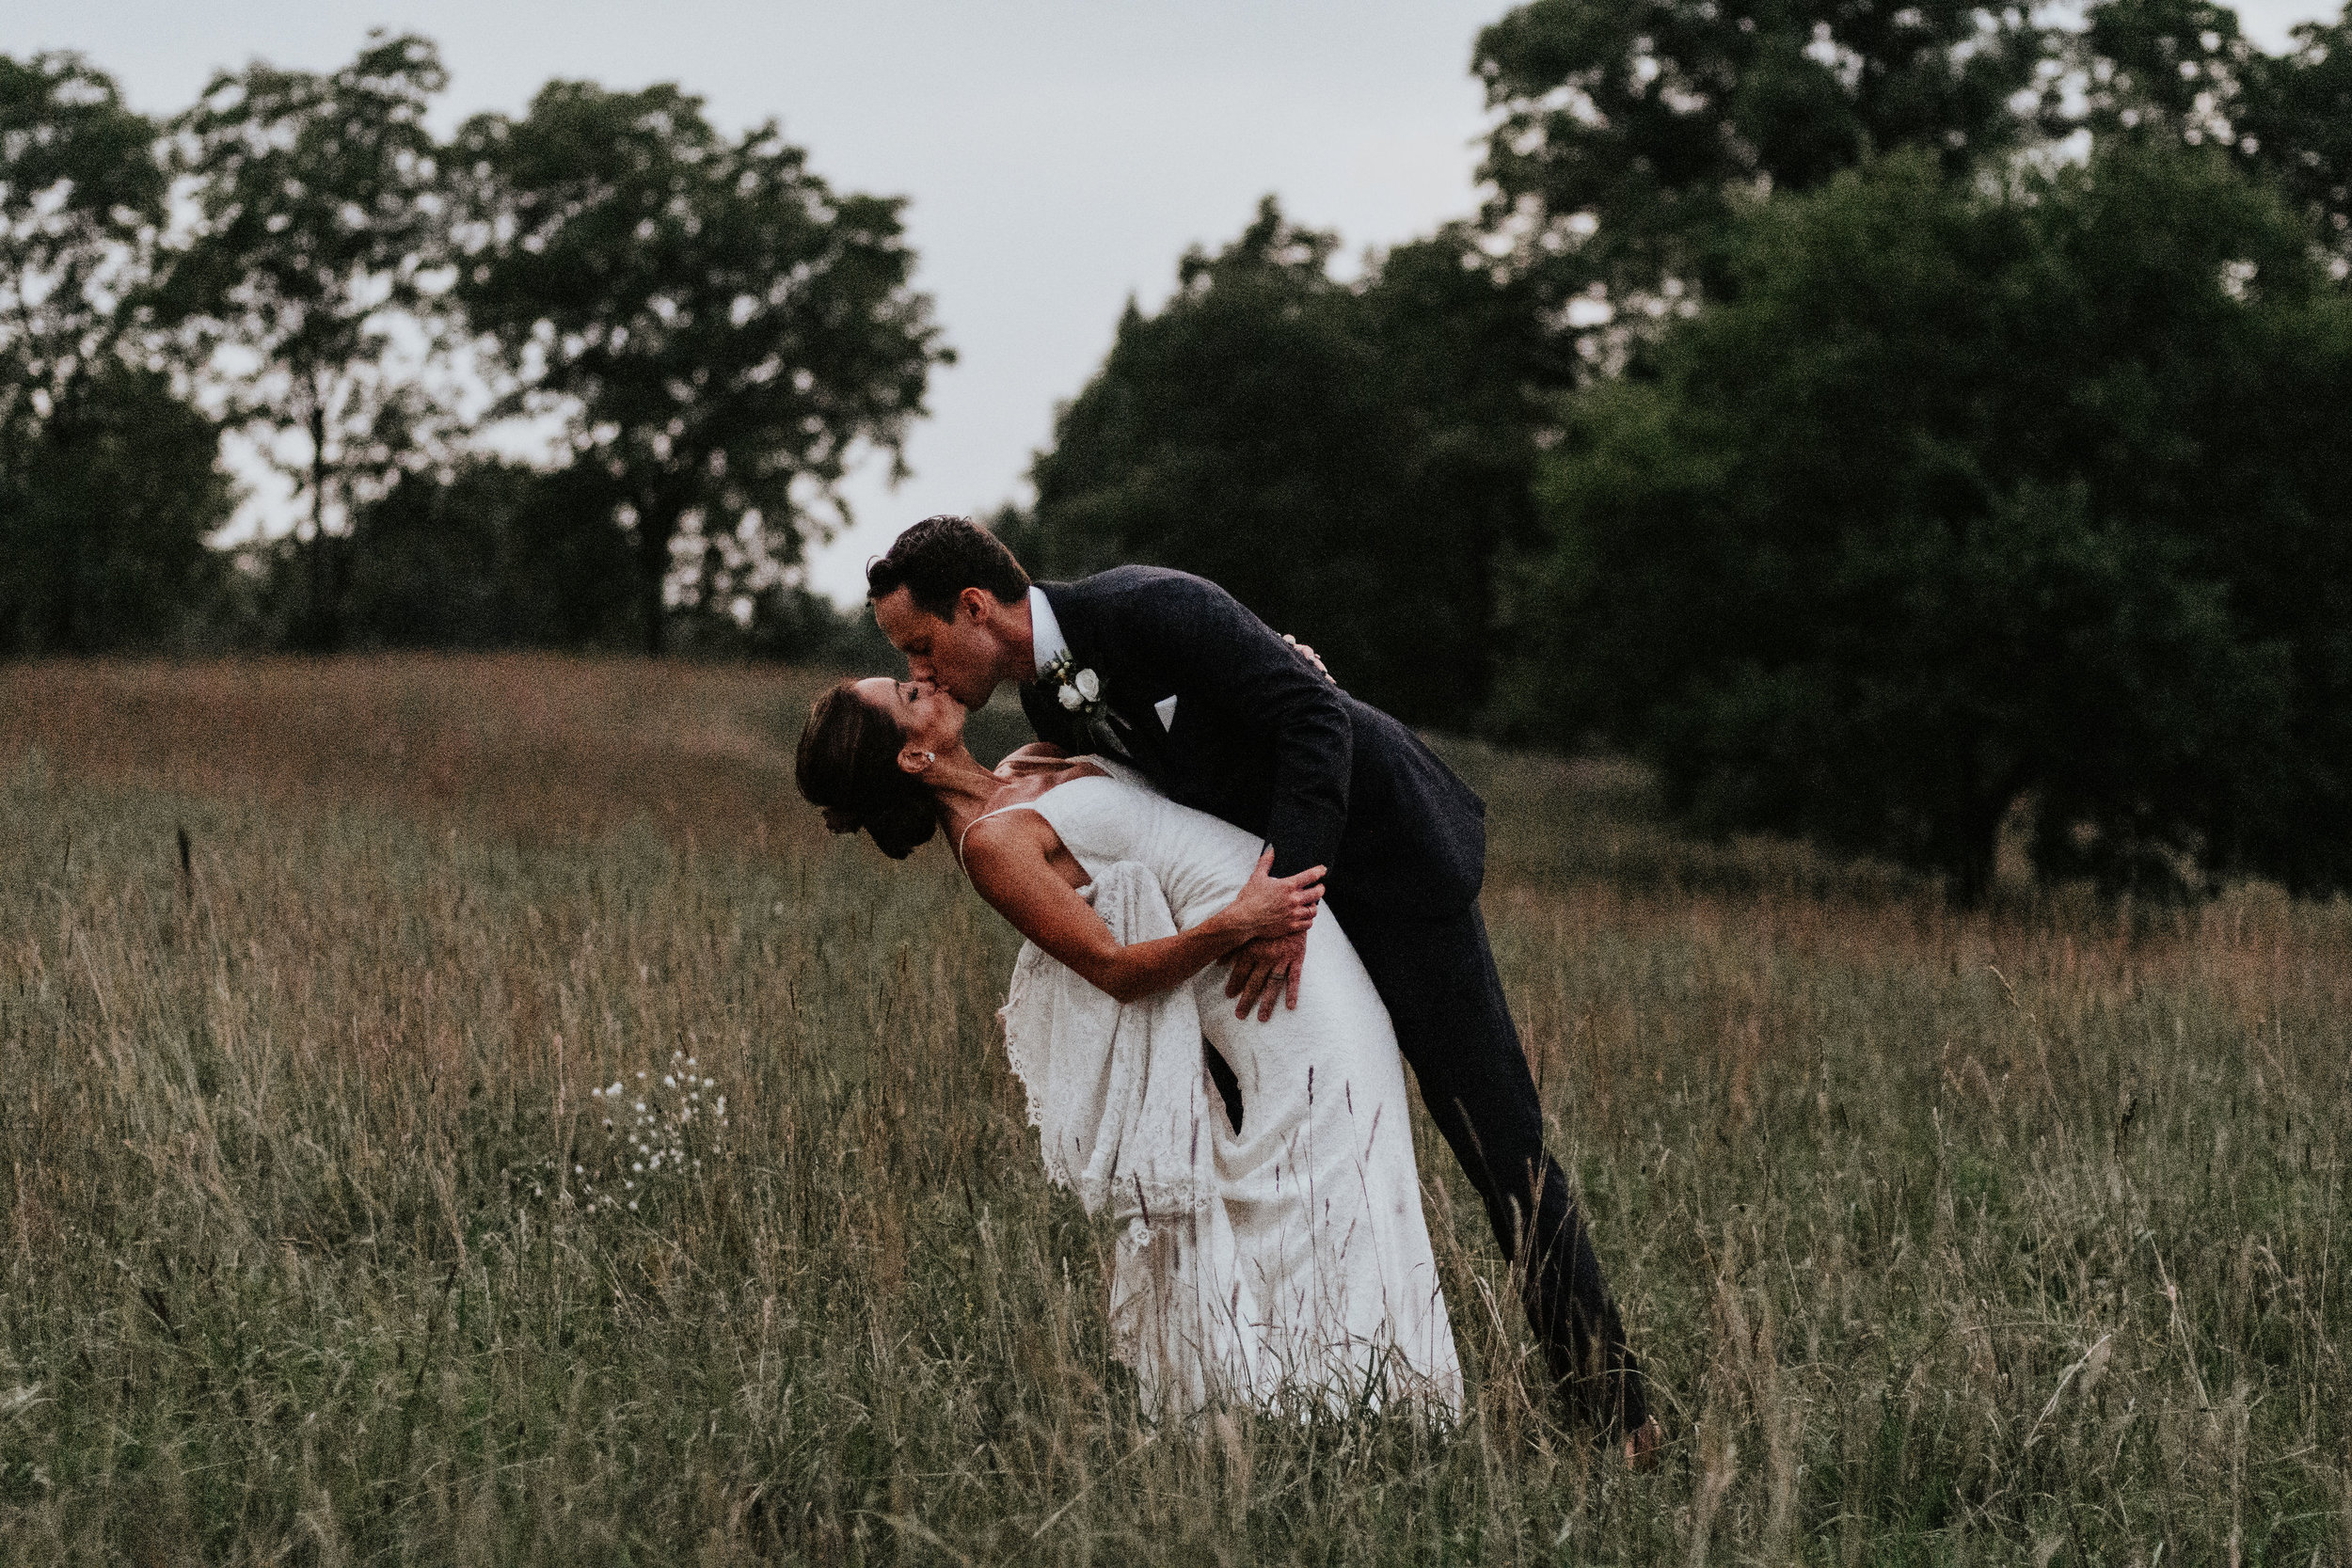 Rustic + Modern - The perfect location for the refined couple planning a midwest destination wedding.